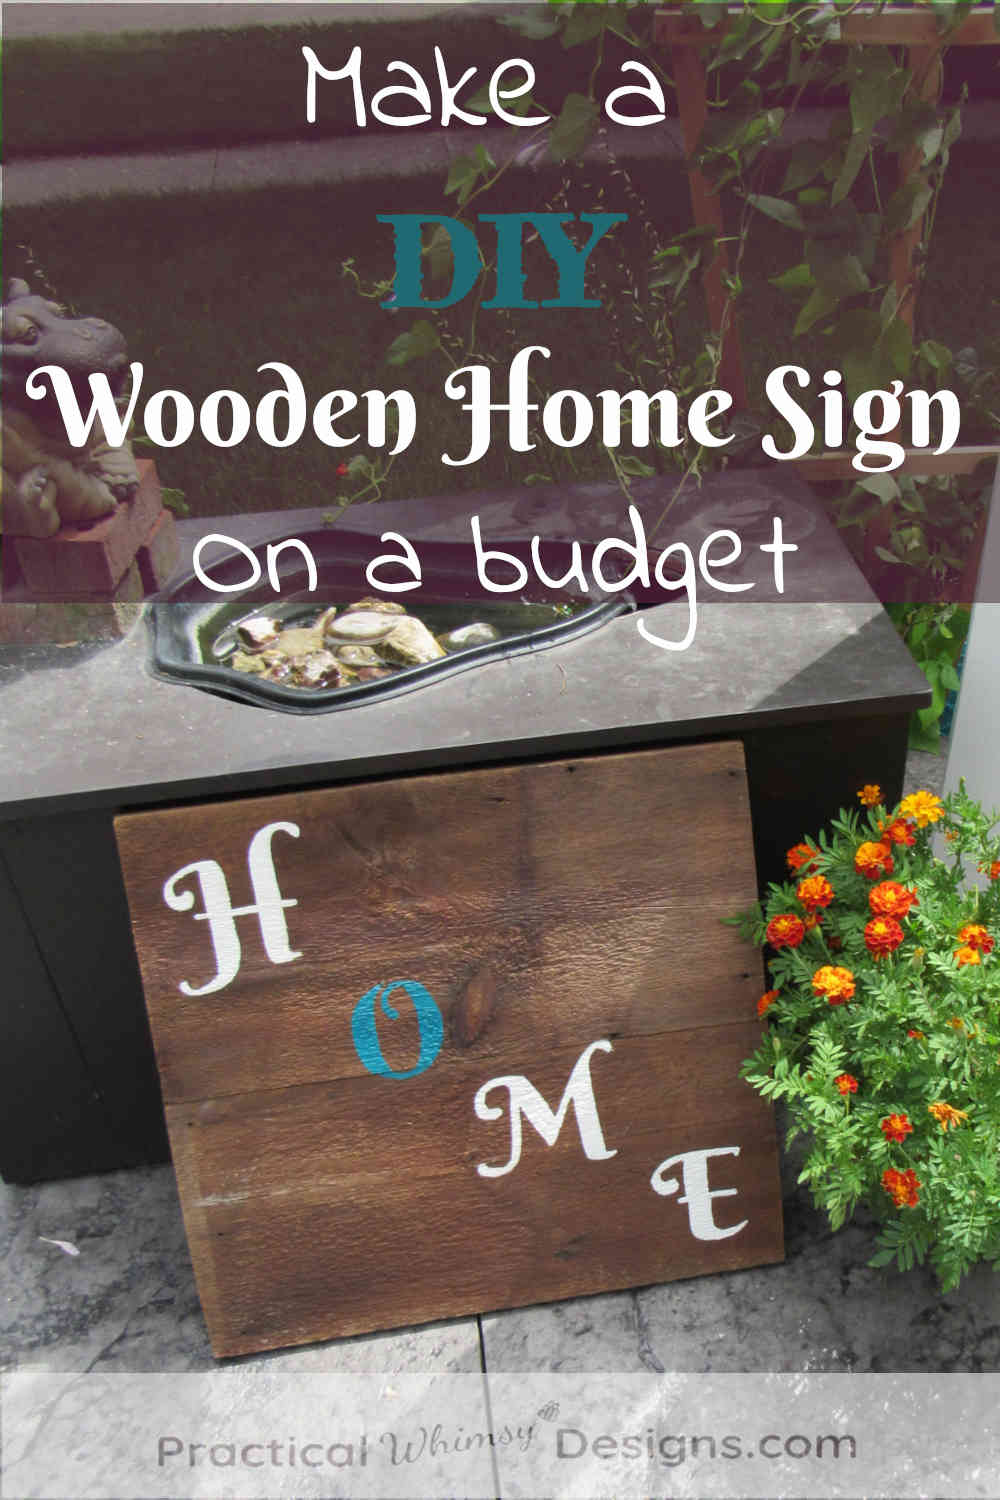 Make a DIY Wooden Home Sign on a Budget, wooden home sign leaning next to a hippo fountain and flowers.